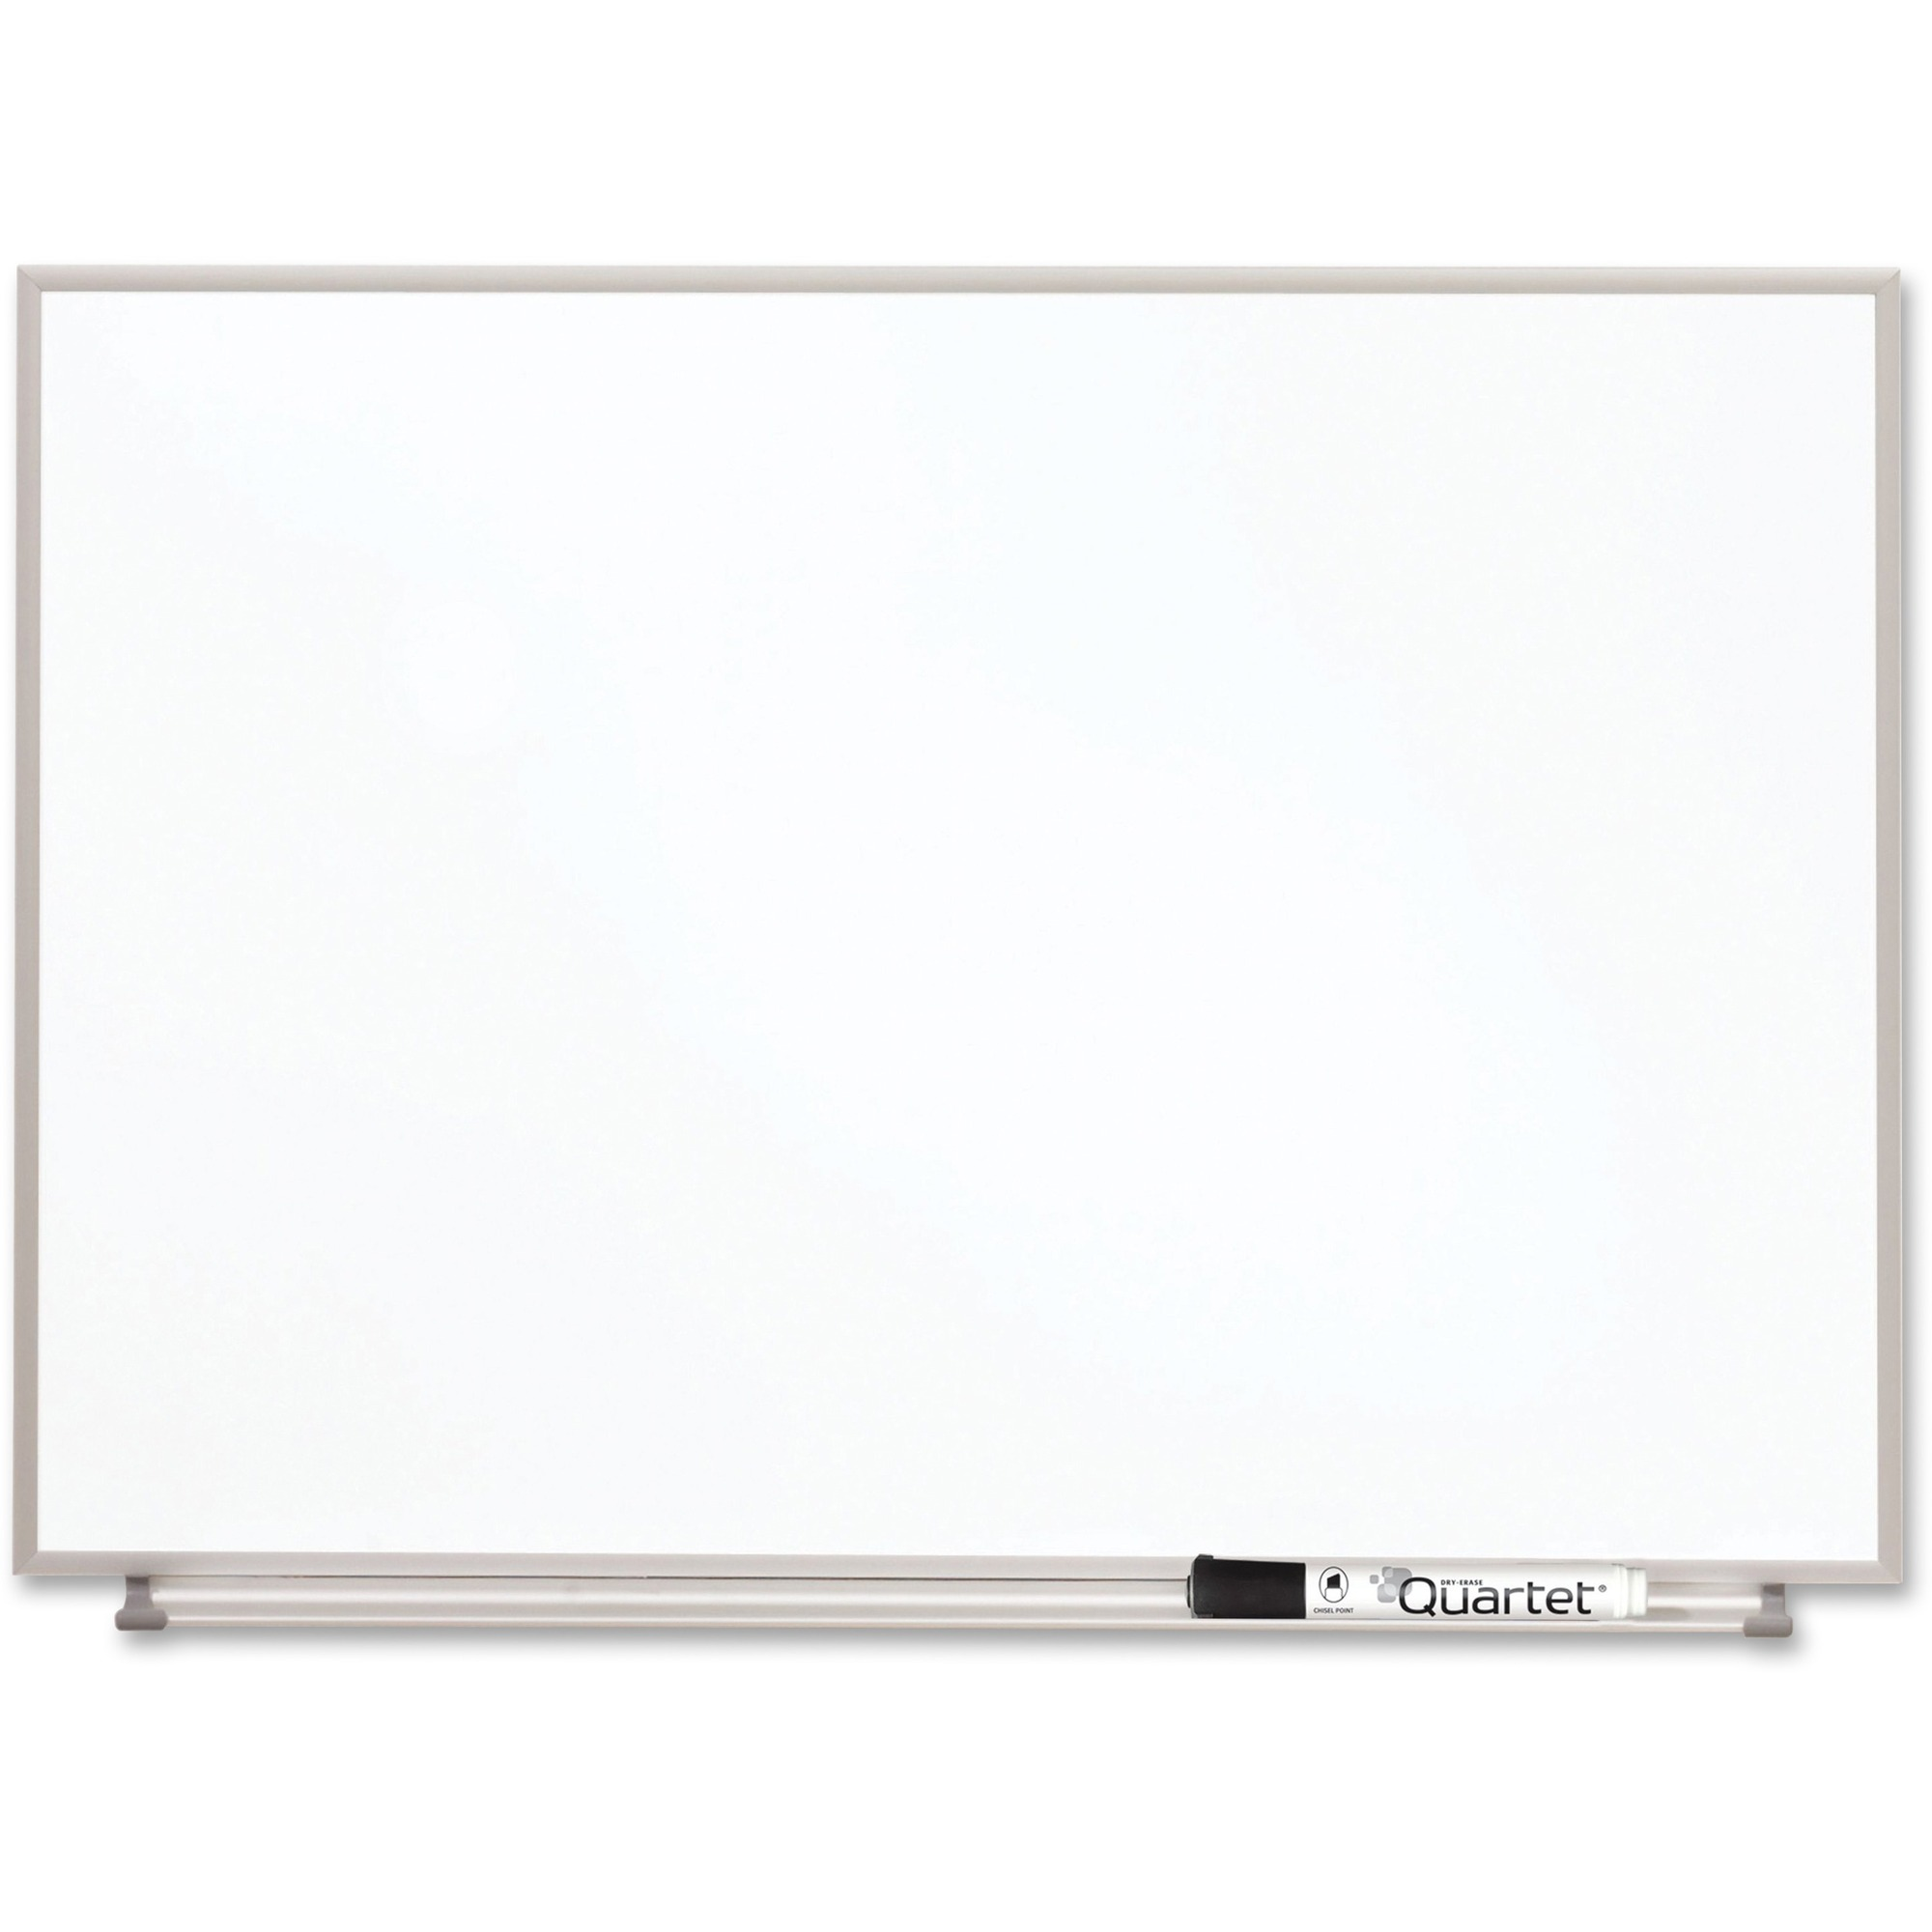 Acco Brands Corporation Quartet Matrix® Magnetic Modular Whiteboards, 23 X 16, Silver Aluminum Frame - 16 Height X 23 Width - White Natural Cork Surface - Silver Aluminum Frame - 1 Each